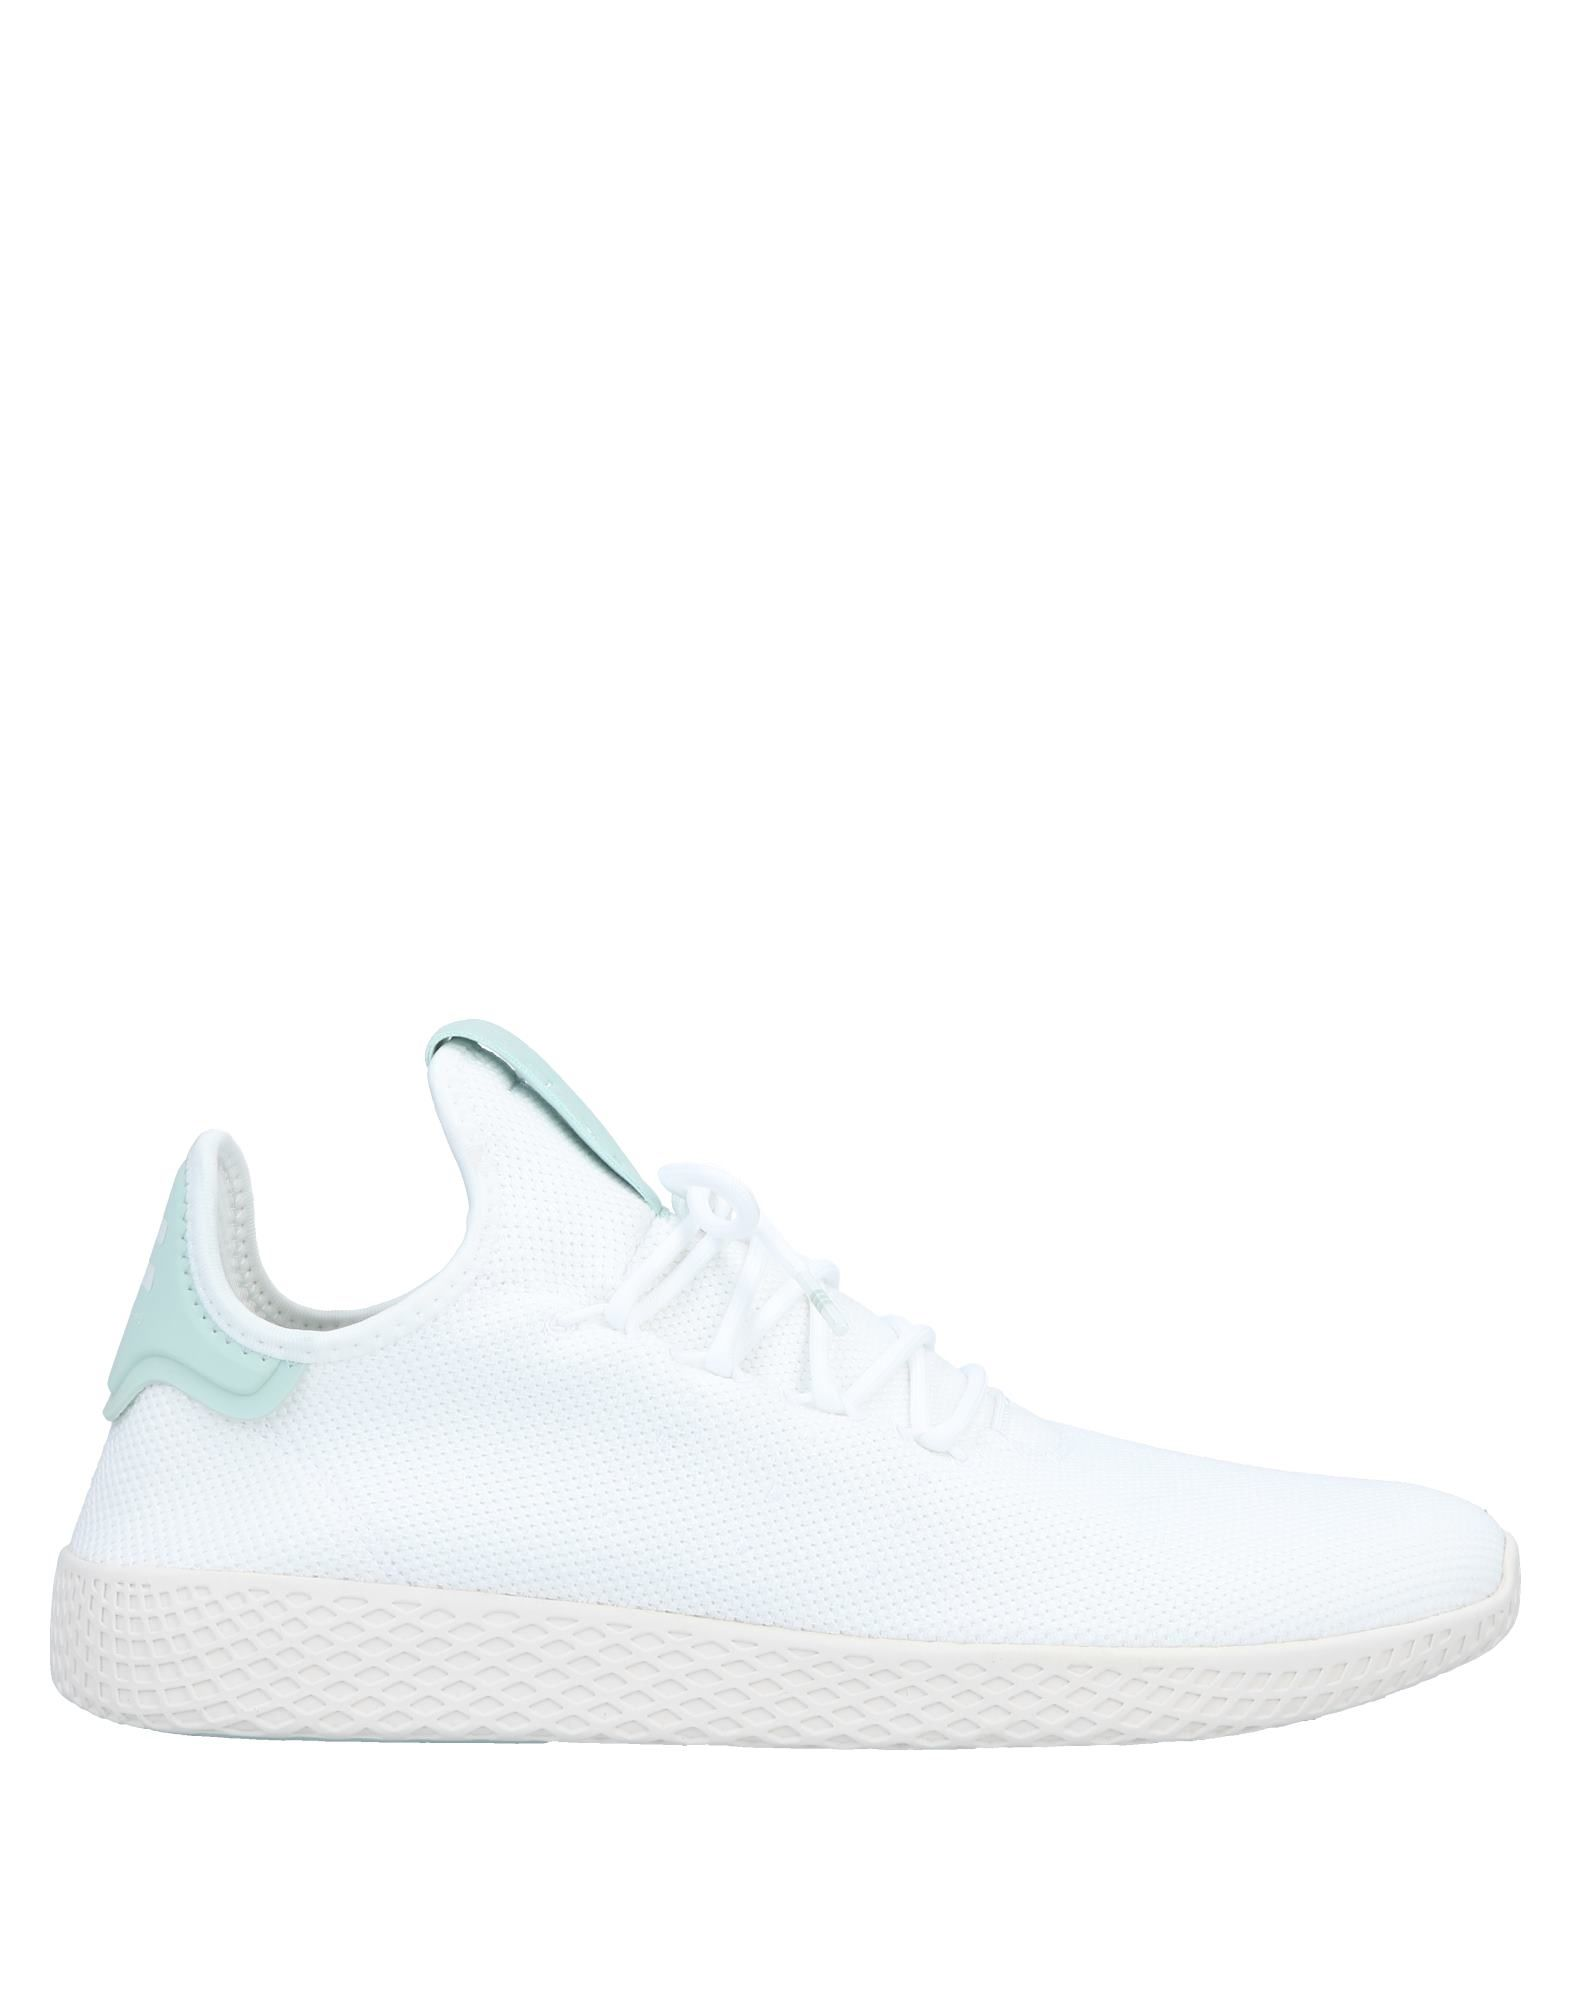 adidas originaux par pharell williams, hommes tennis - hommes williams, adidas originaux par pharell williams baskets en ligne sur l'australie - 11564224pw 31f853